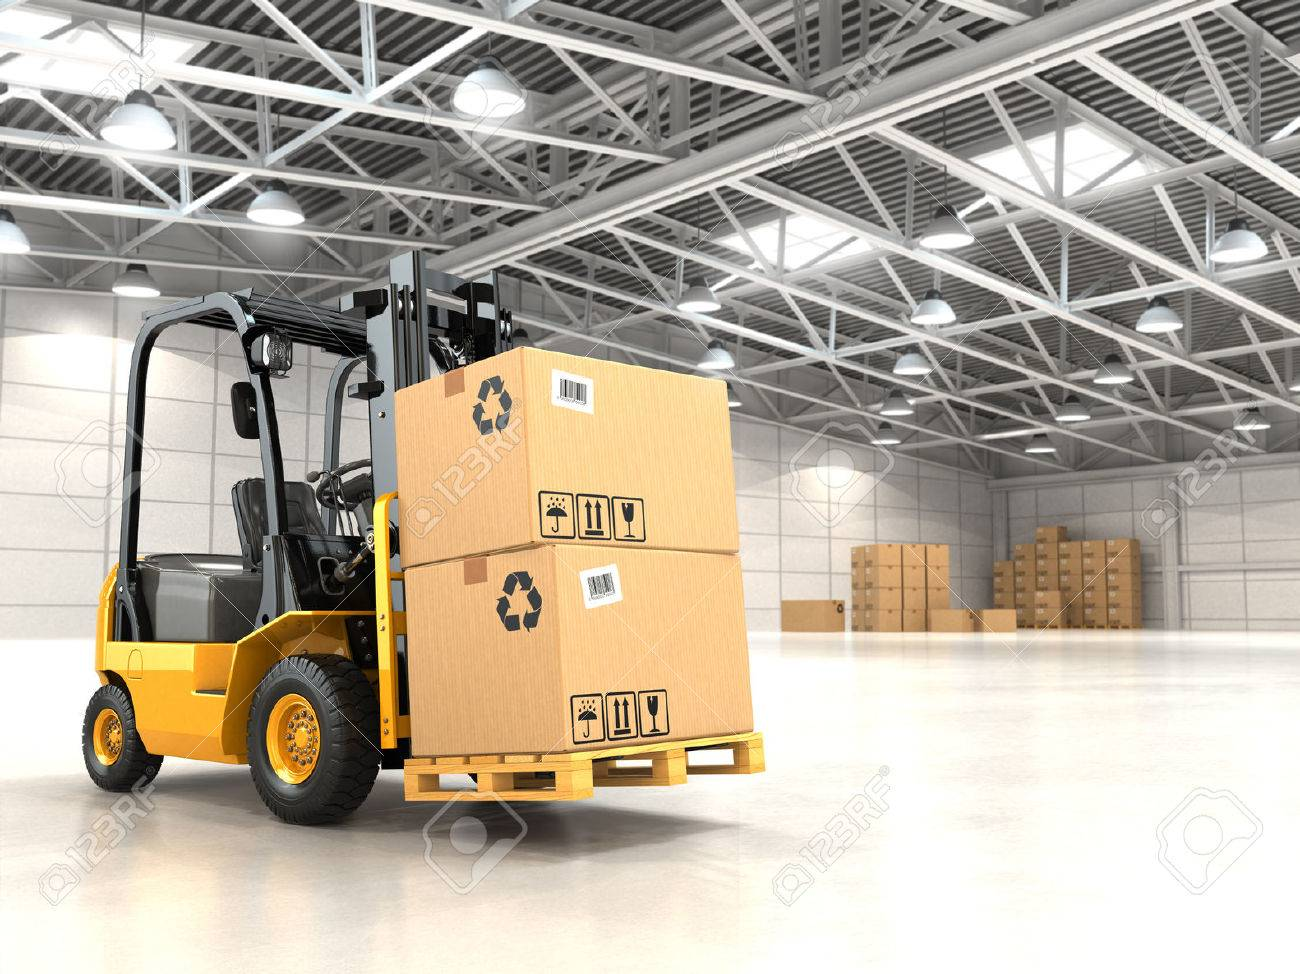 Forklift Truck In Warehouse Or Storage Loading Cardboard Boxes... Stock Photo, Picture And Royalty Free Image. Image 33397083.